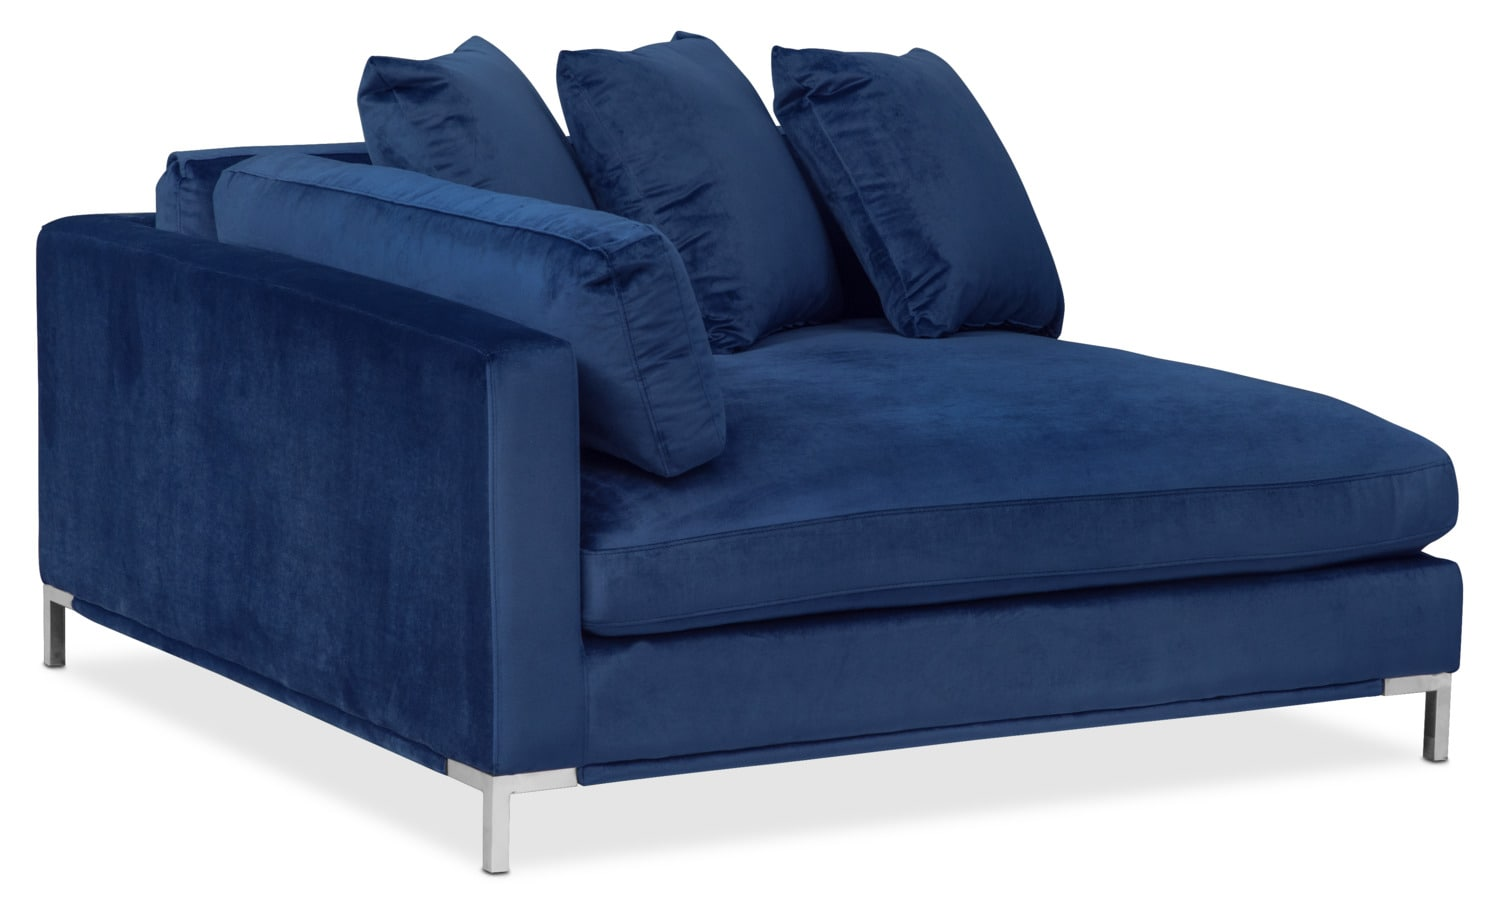 Moda 3 piece sectional with right facing chaise blue for 3 piece sectional sofa with chaise